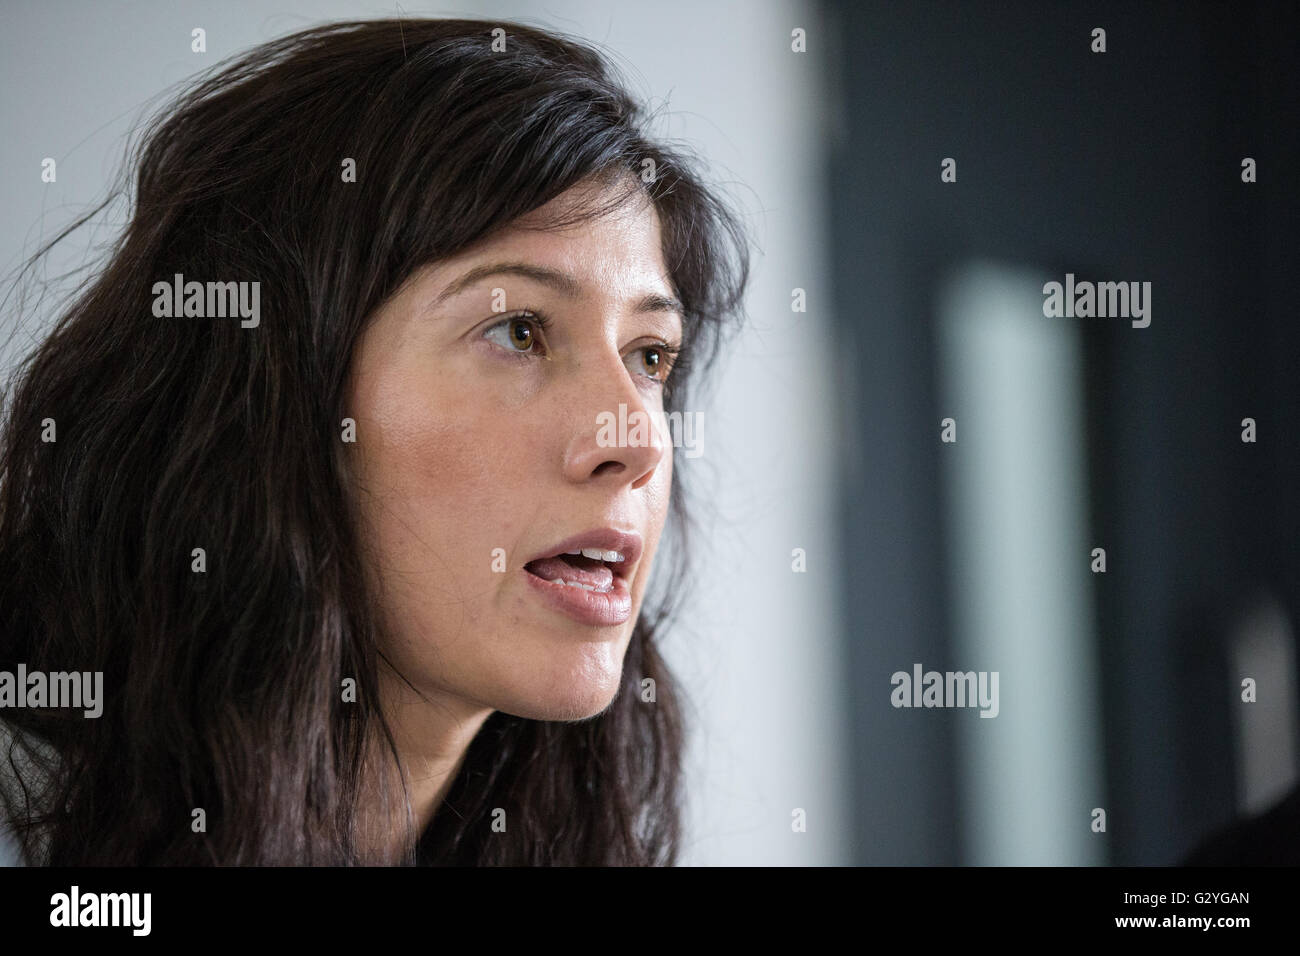 London, UK. 4th June, 2016. Rachel Harger of Defend The Right To Protest and trainee civil liberties lawyer addresses - Stock Image